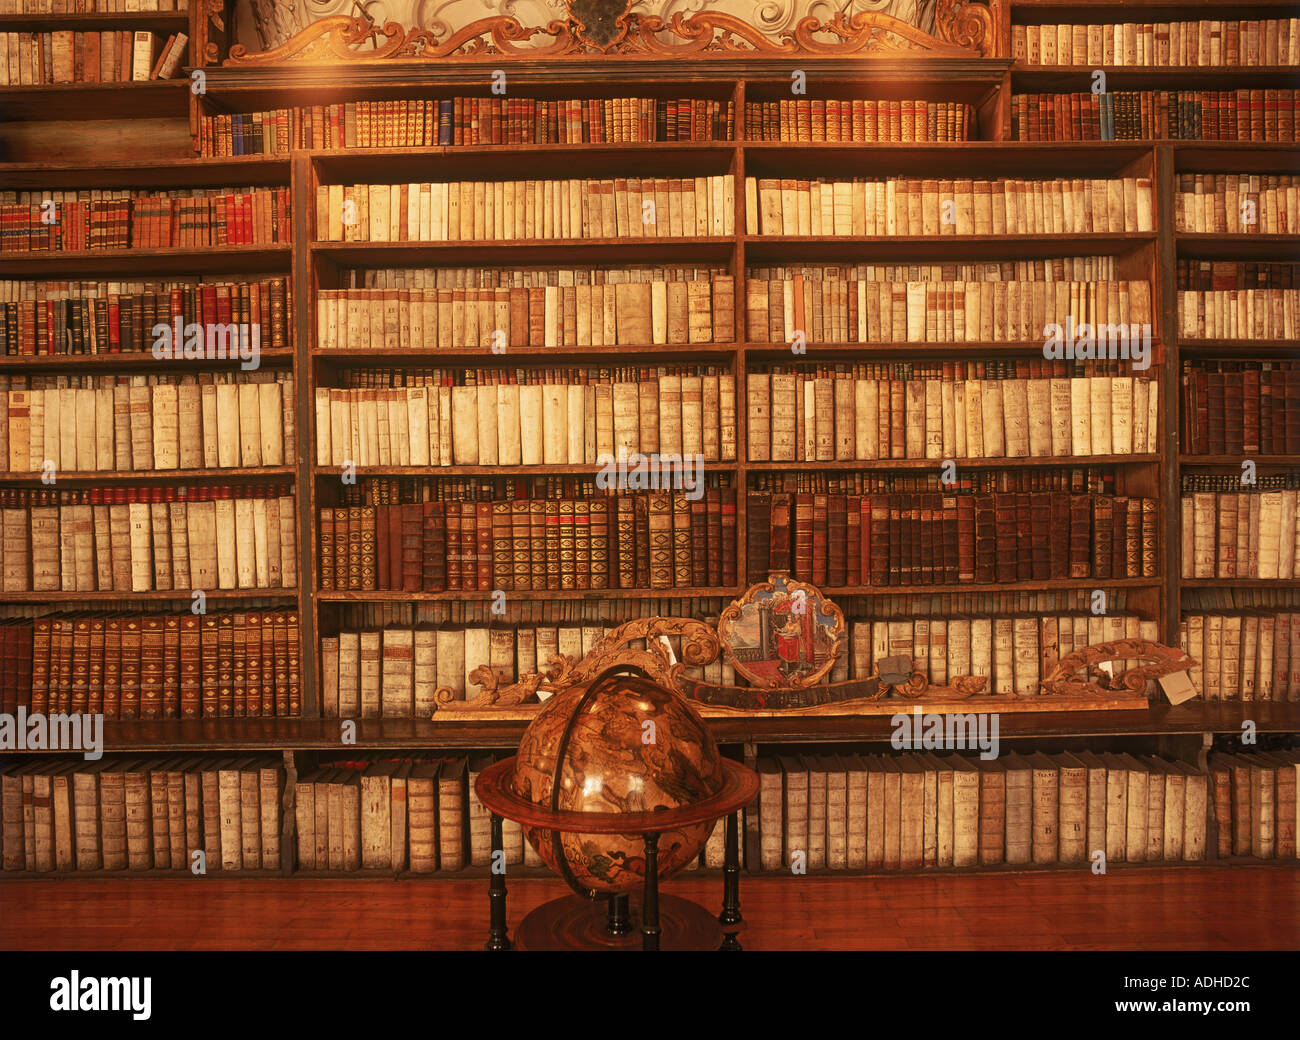 Theological Hall of Strahov Library from 1671 in Prague - Stock Image